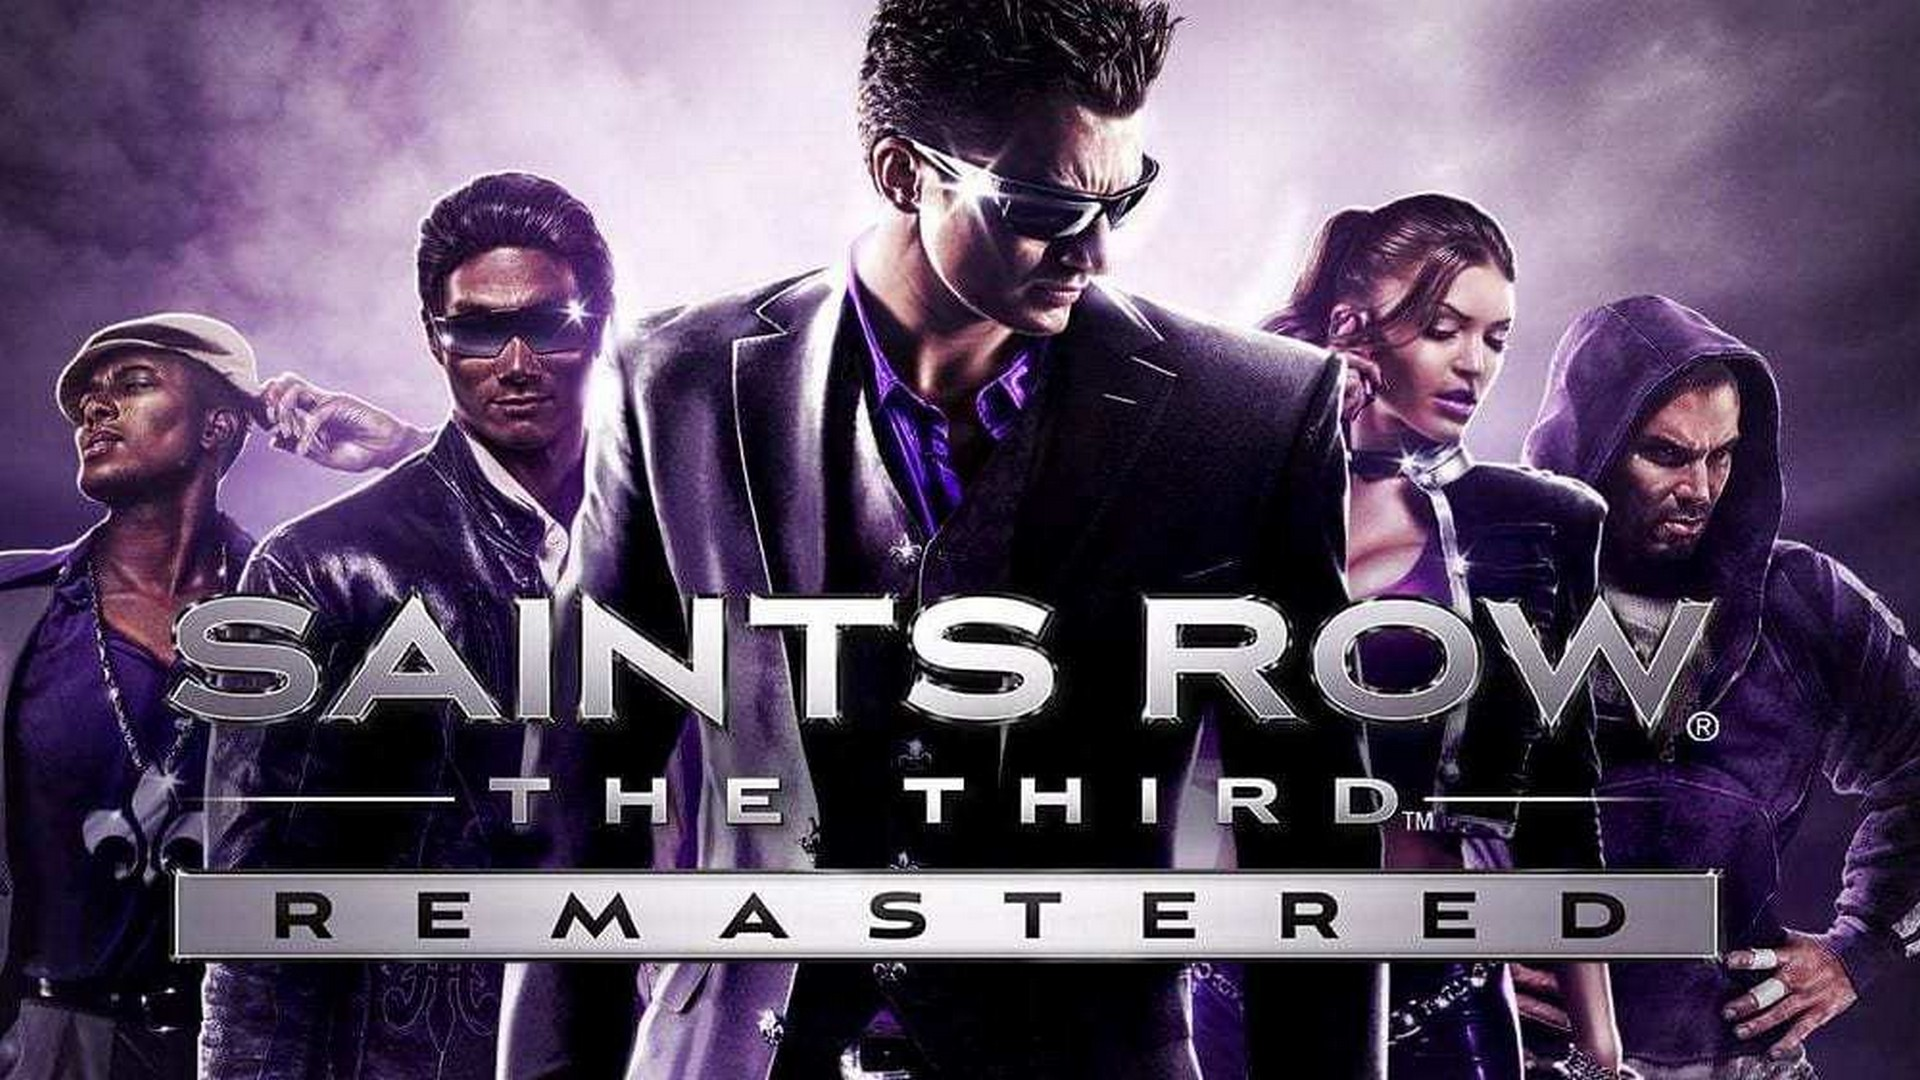 Saints Row The Third Remastered Out Now